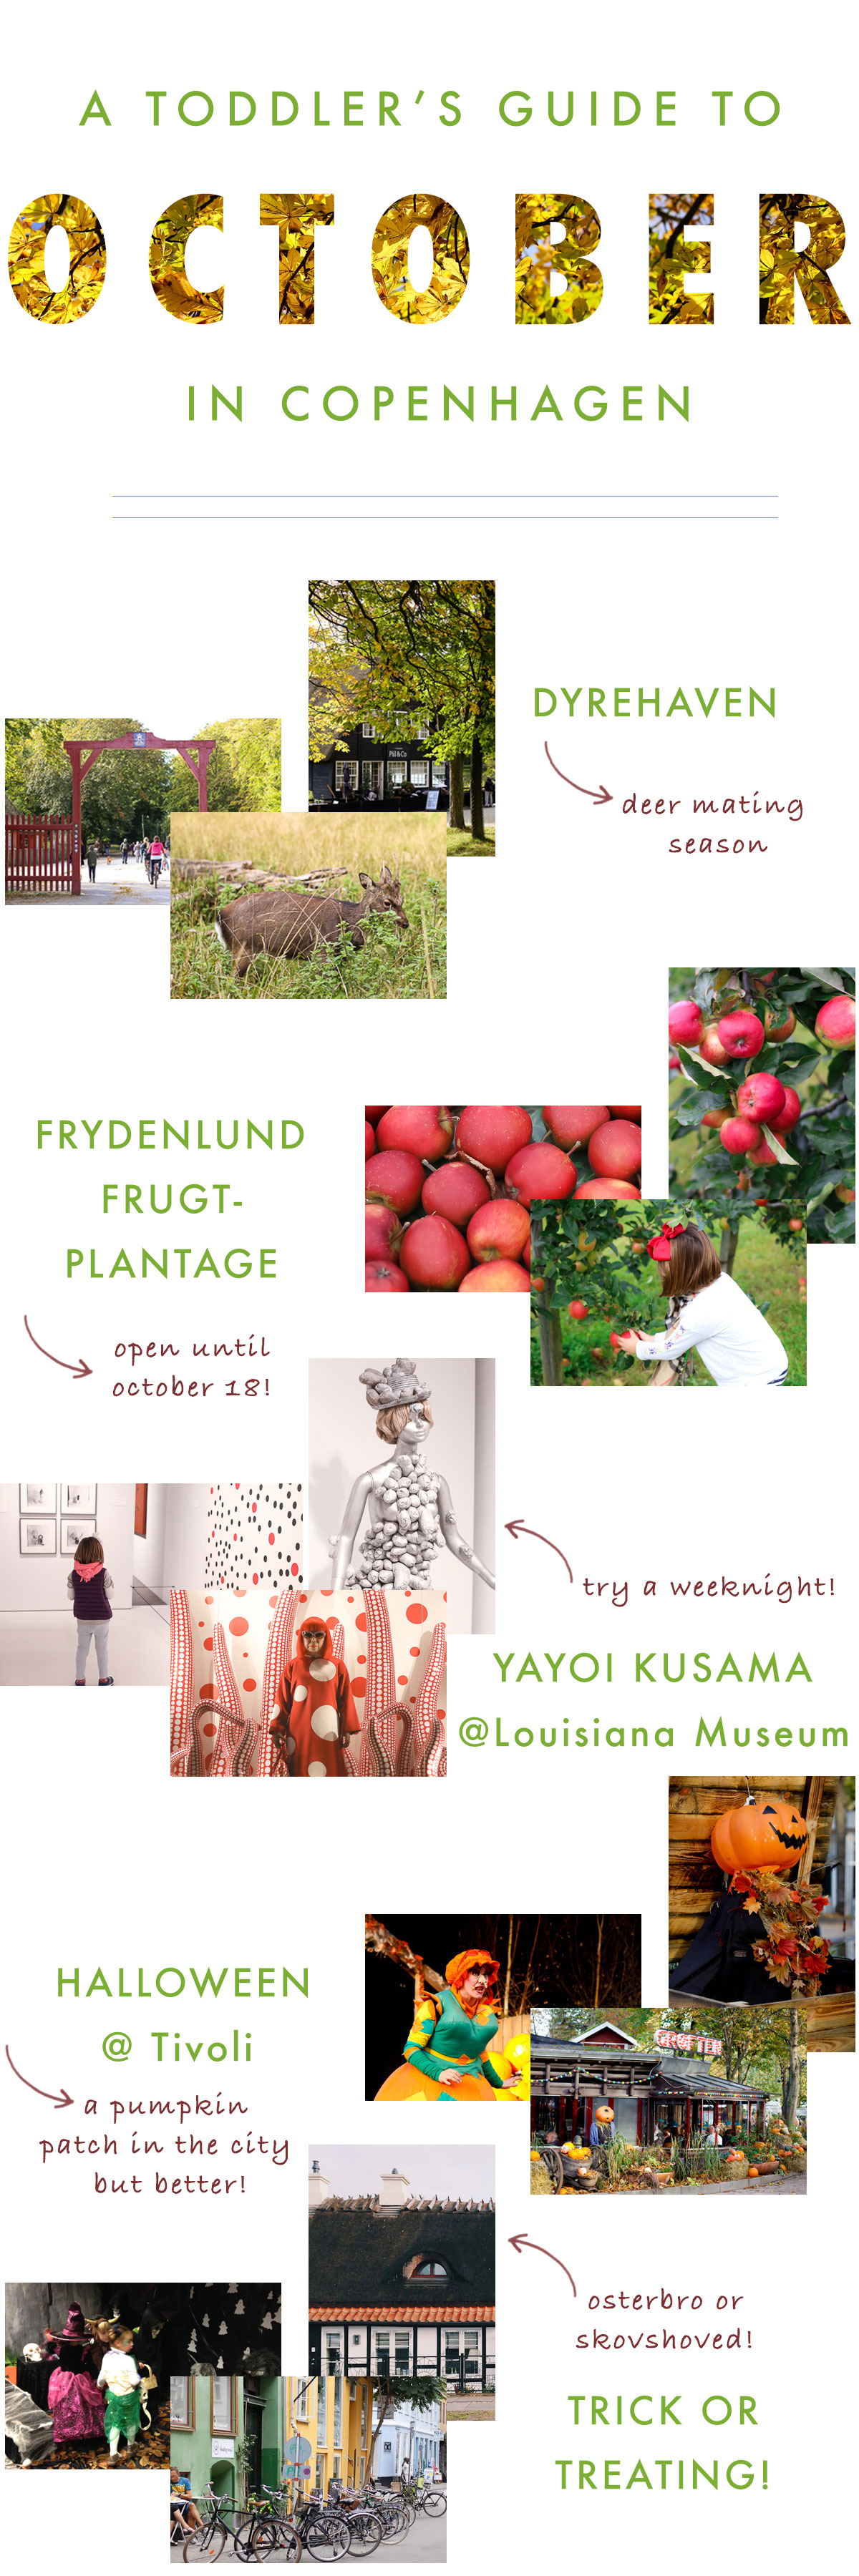 A-Toddler's-Guide-to-October-in-Copenhagen-wo